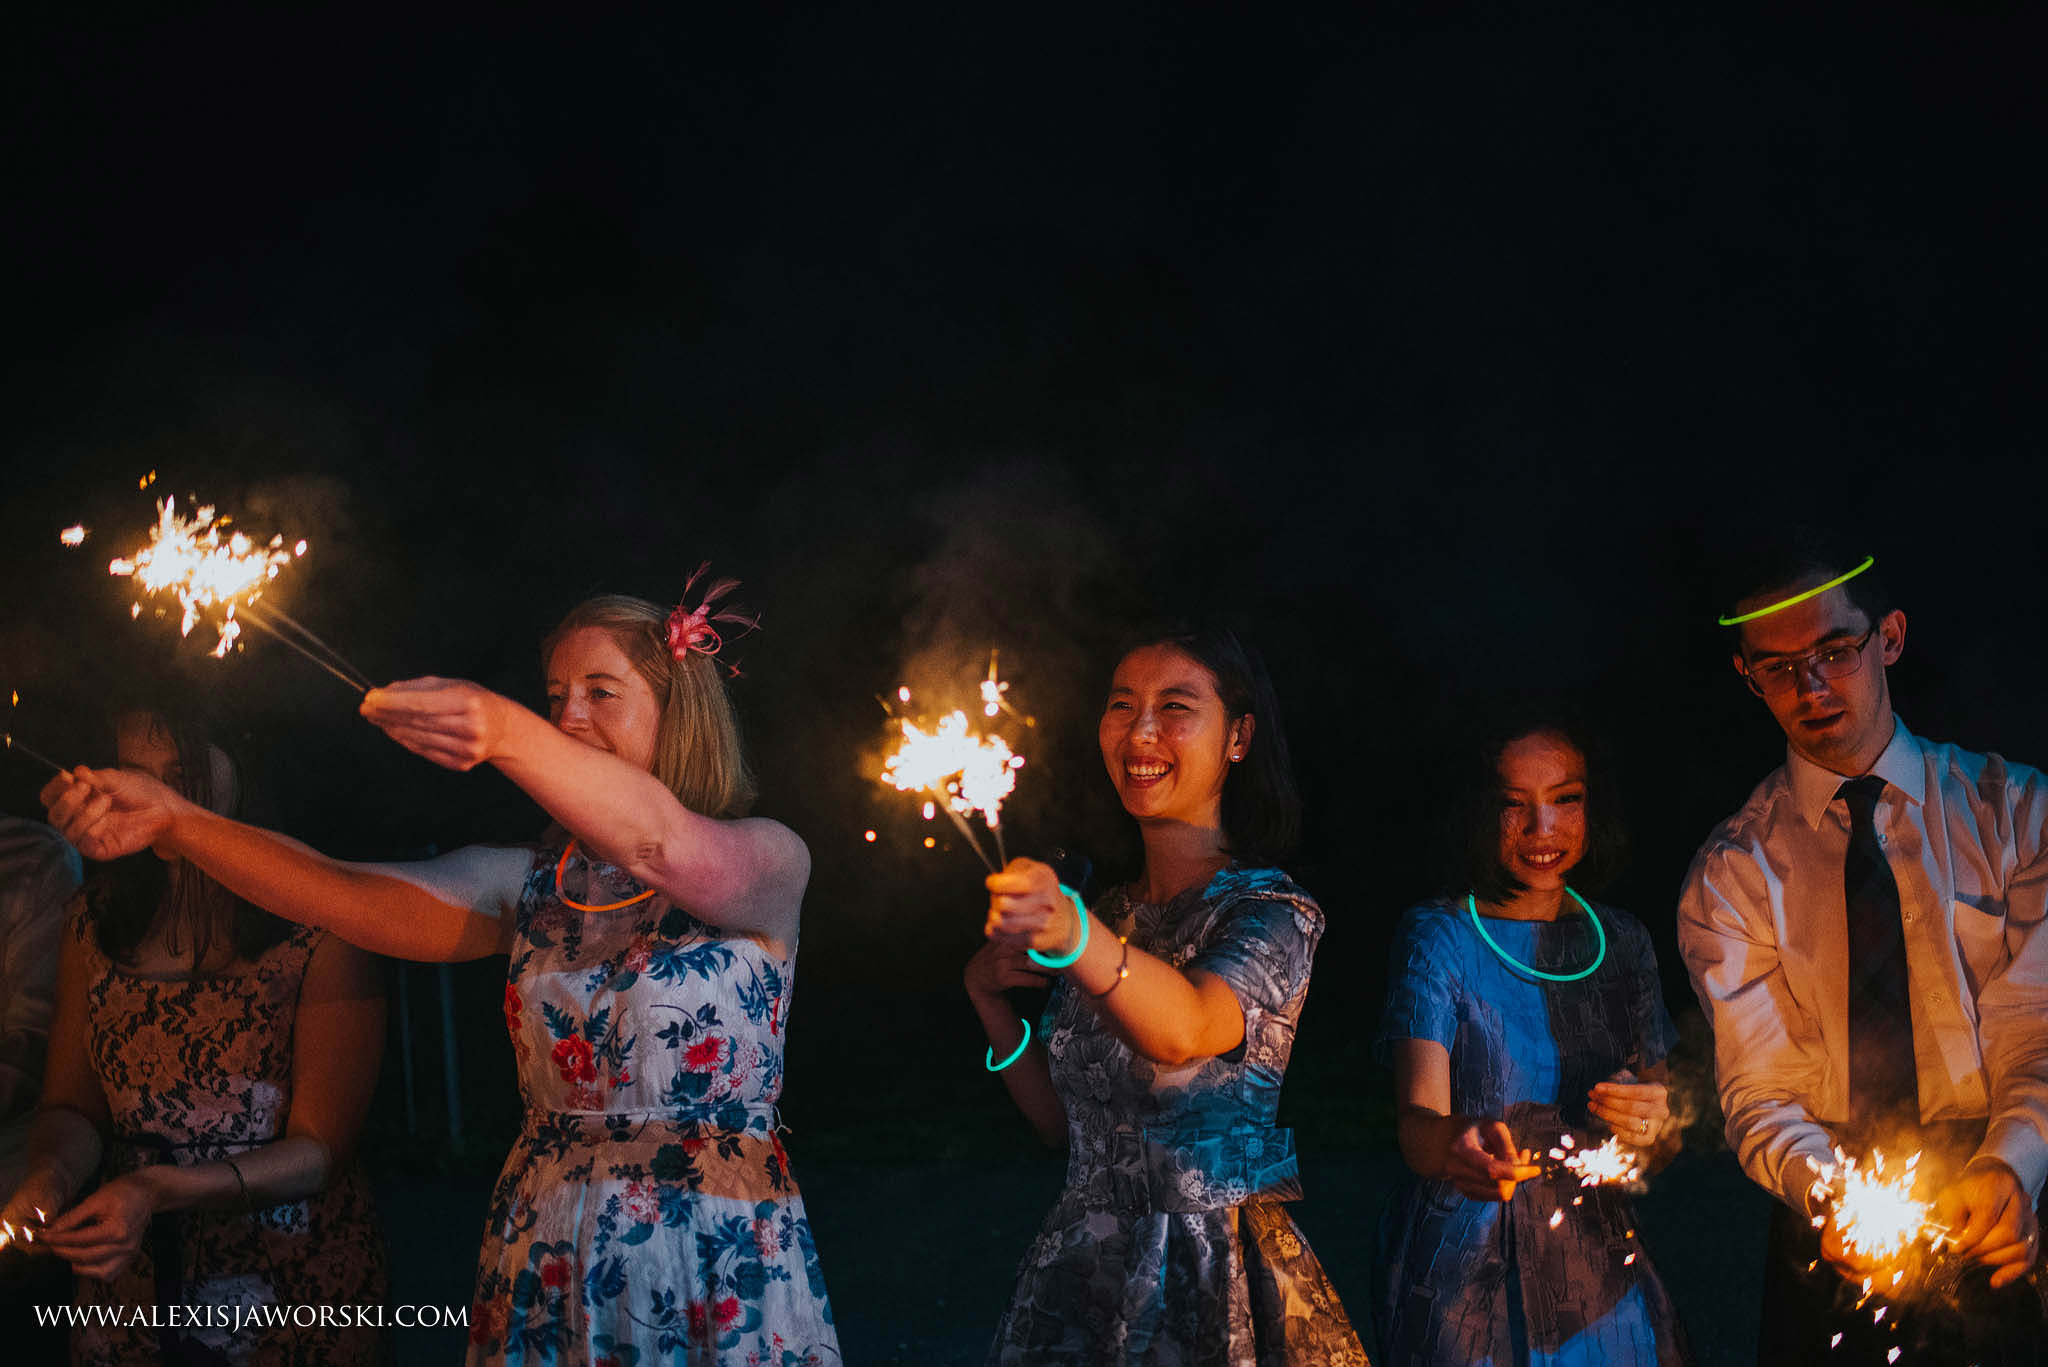 Guests with sparklers